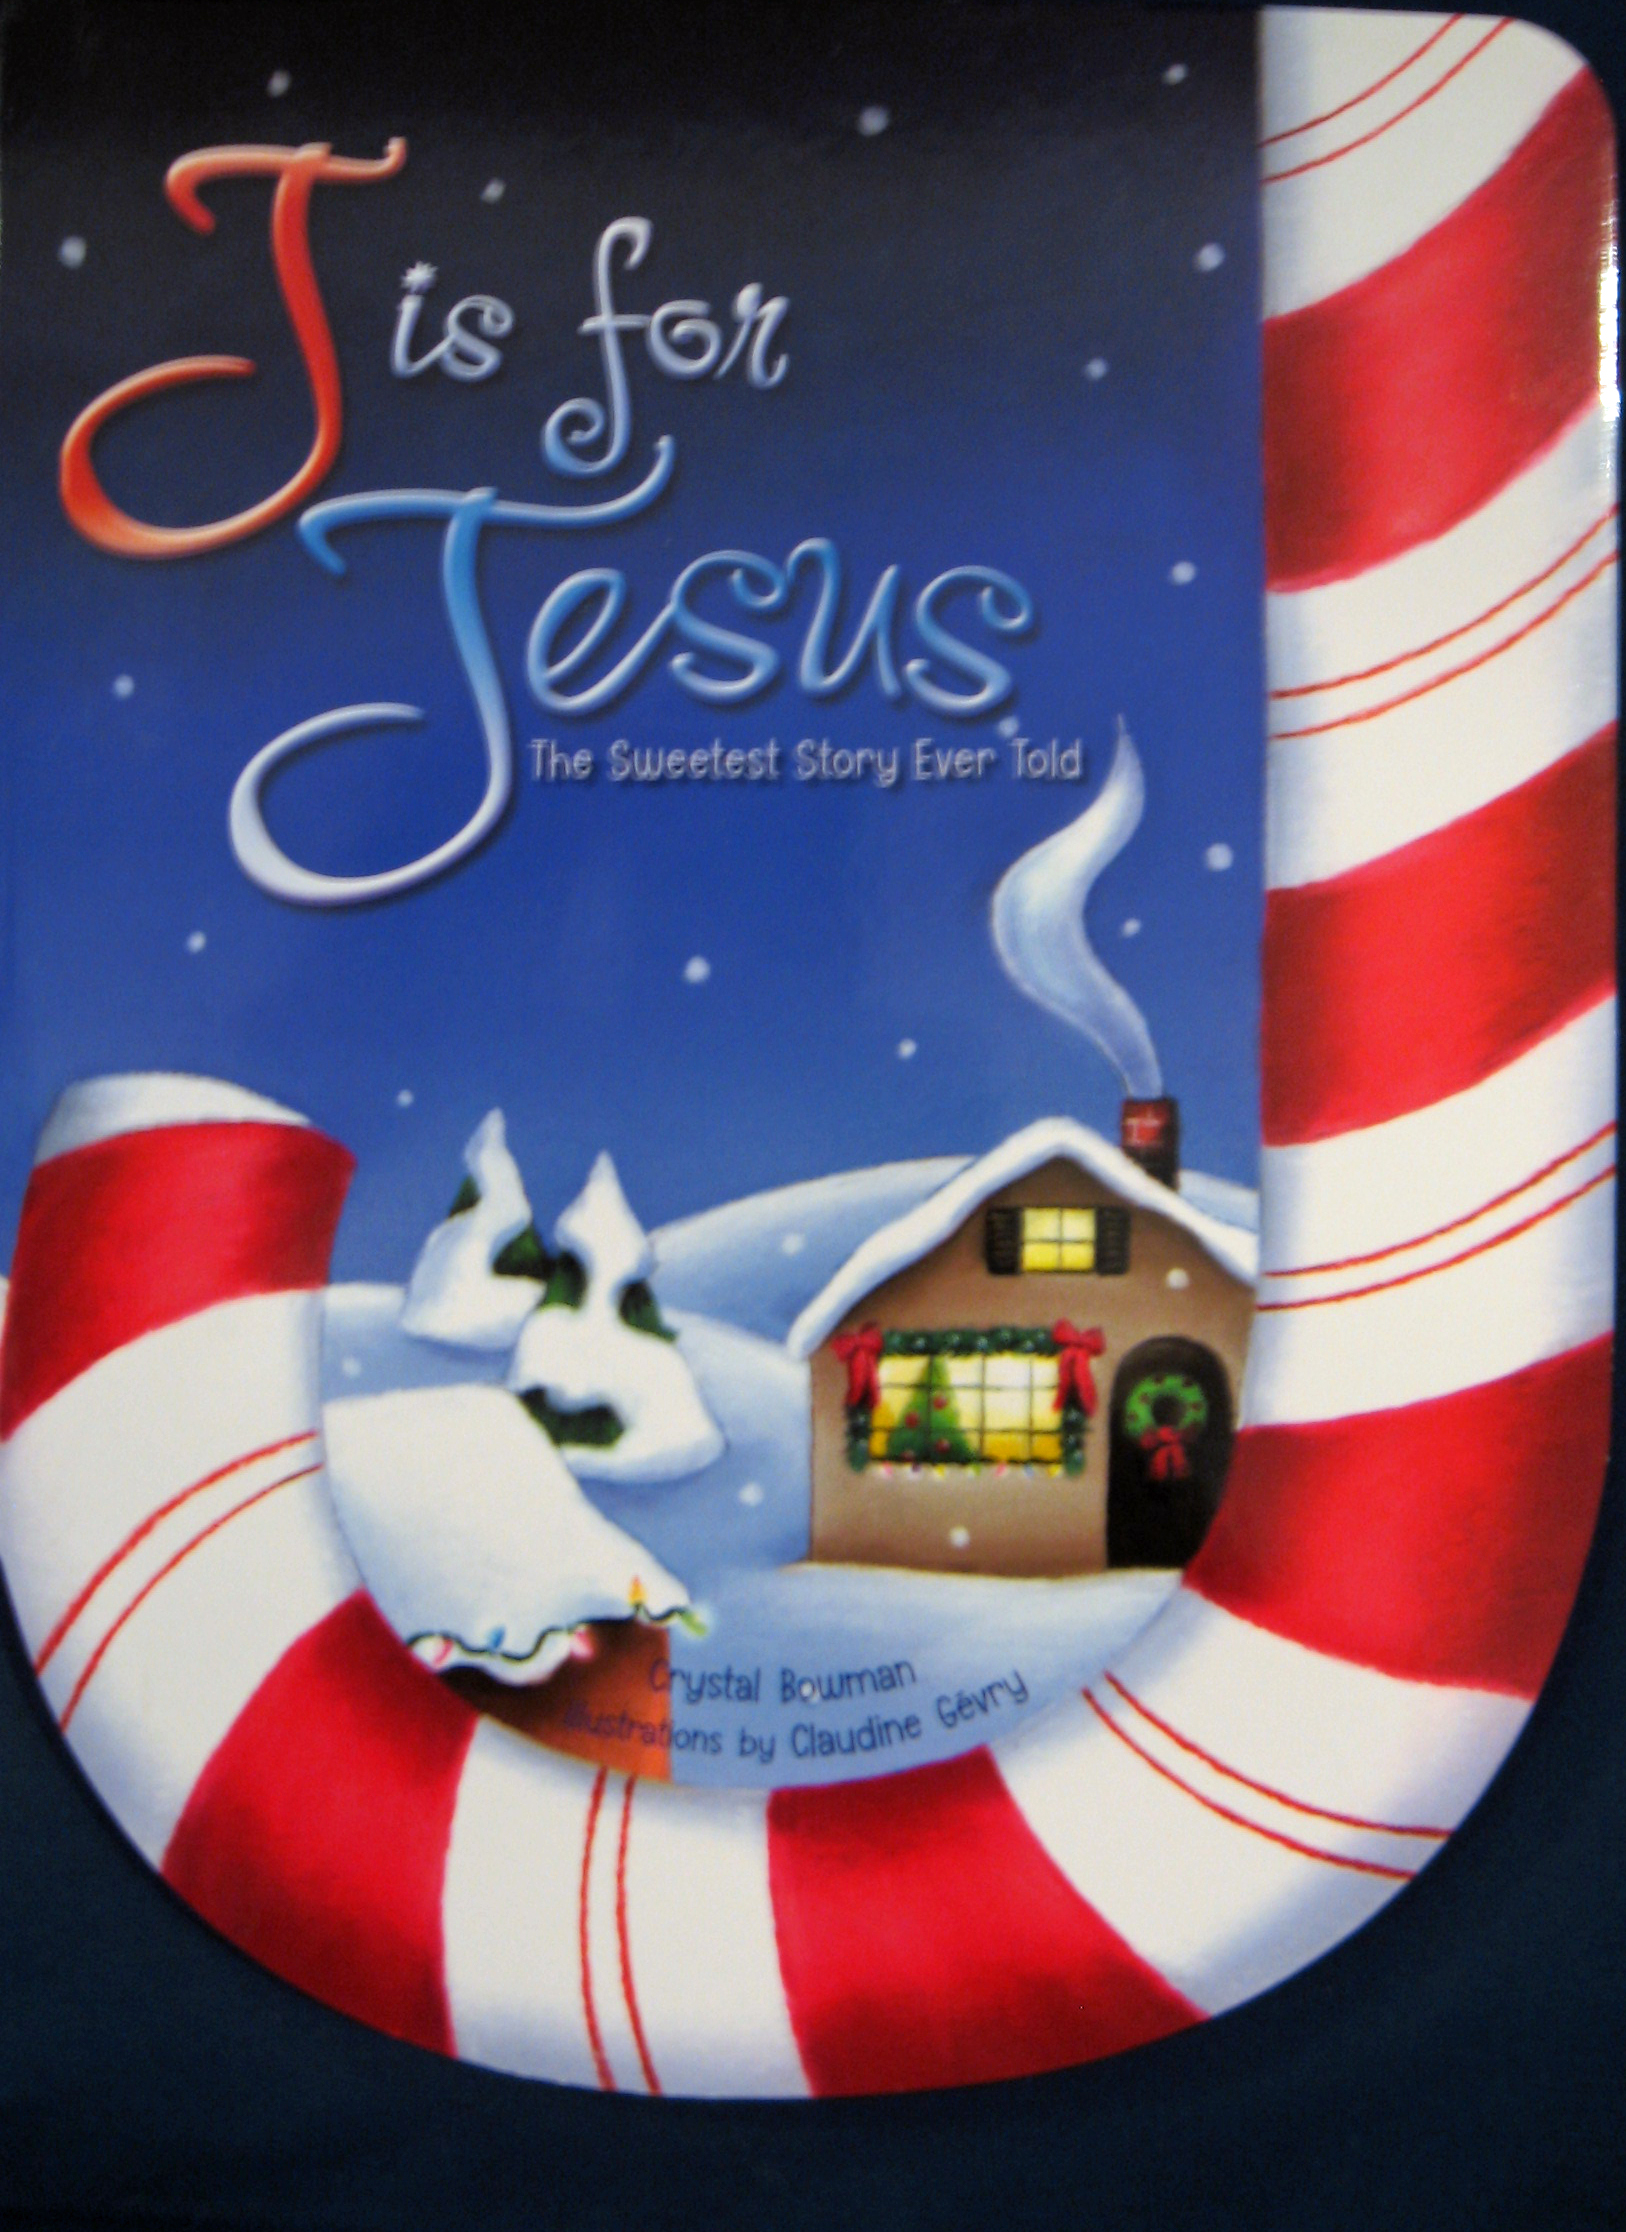 J Is for Jesus Christmas Board Book by Crystal Bowman 108-9780310708919